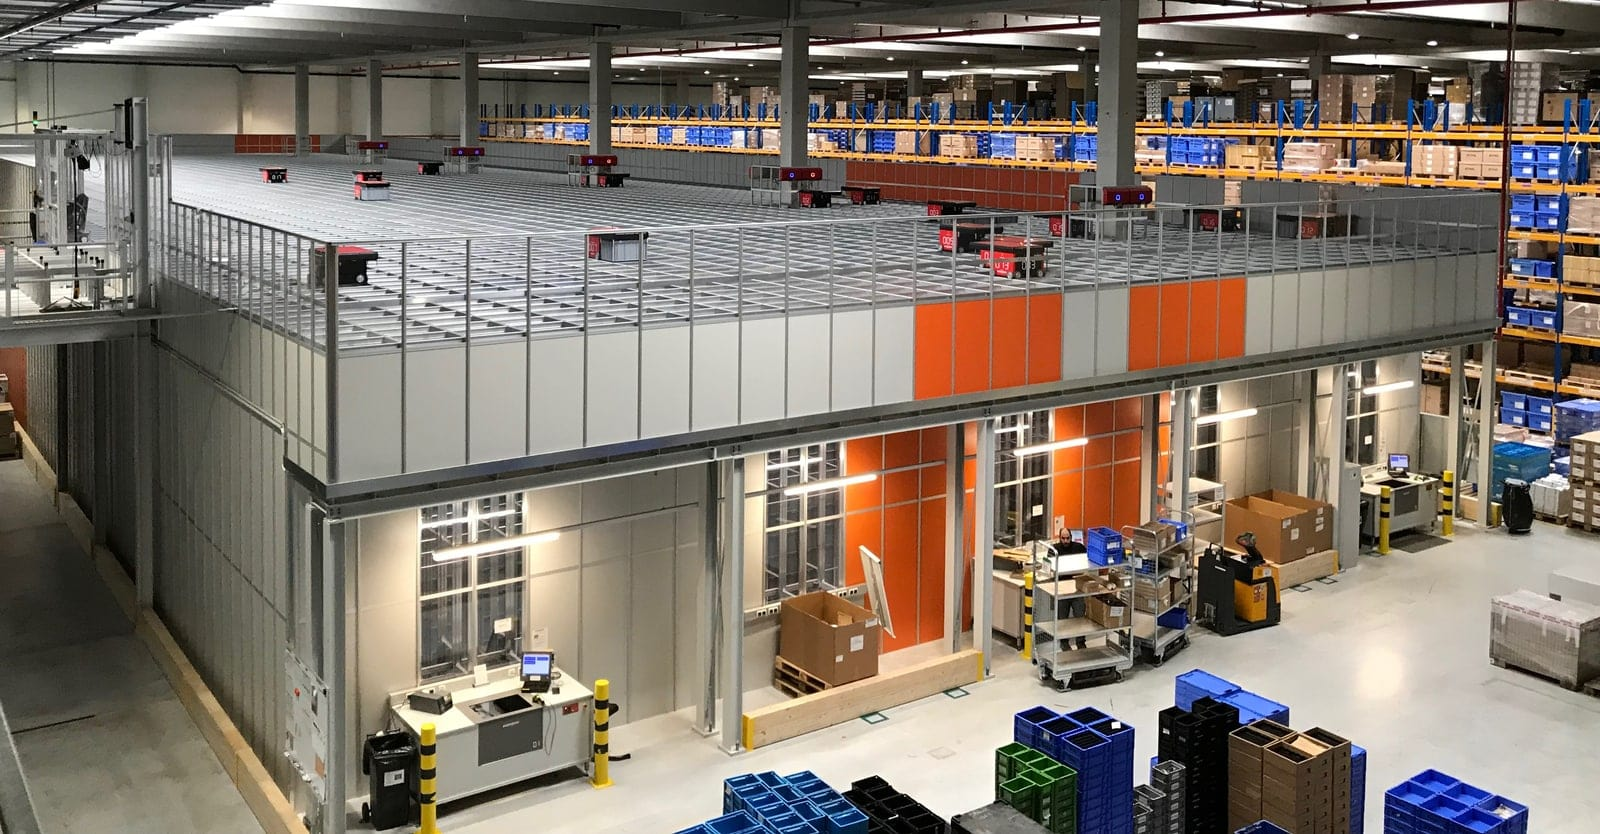 Element Logic Germany Gmbh Receives The First Order For Autostore In Austria Element Logic